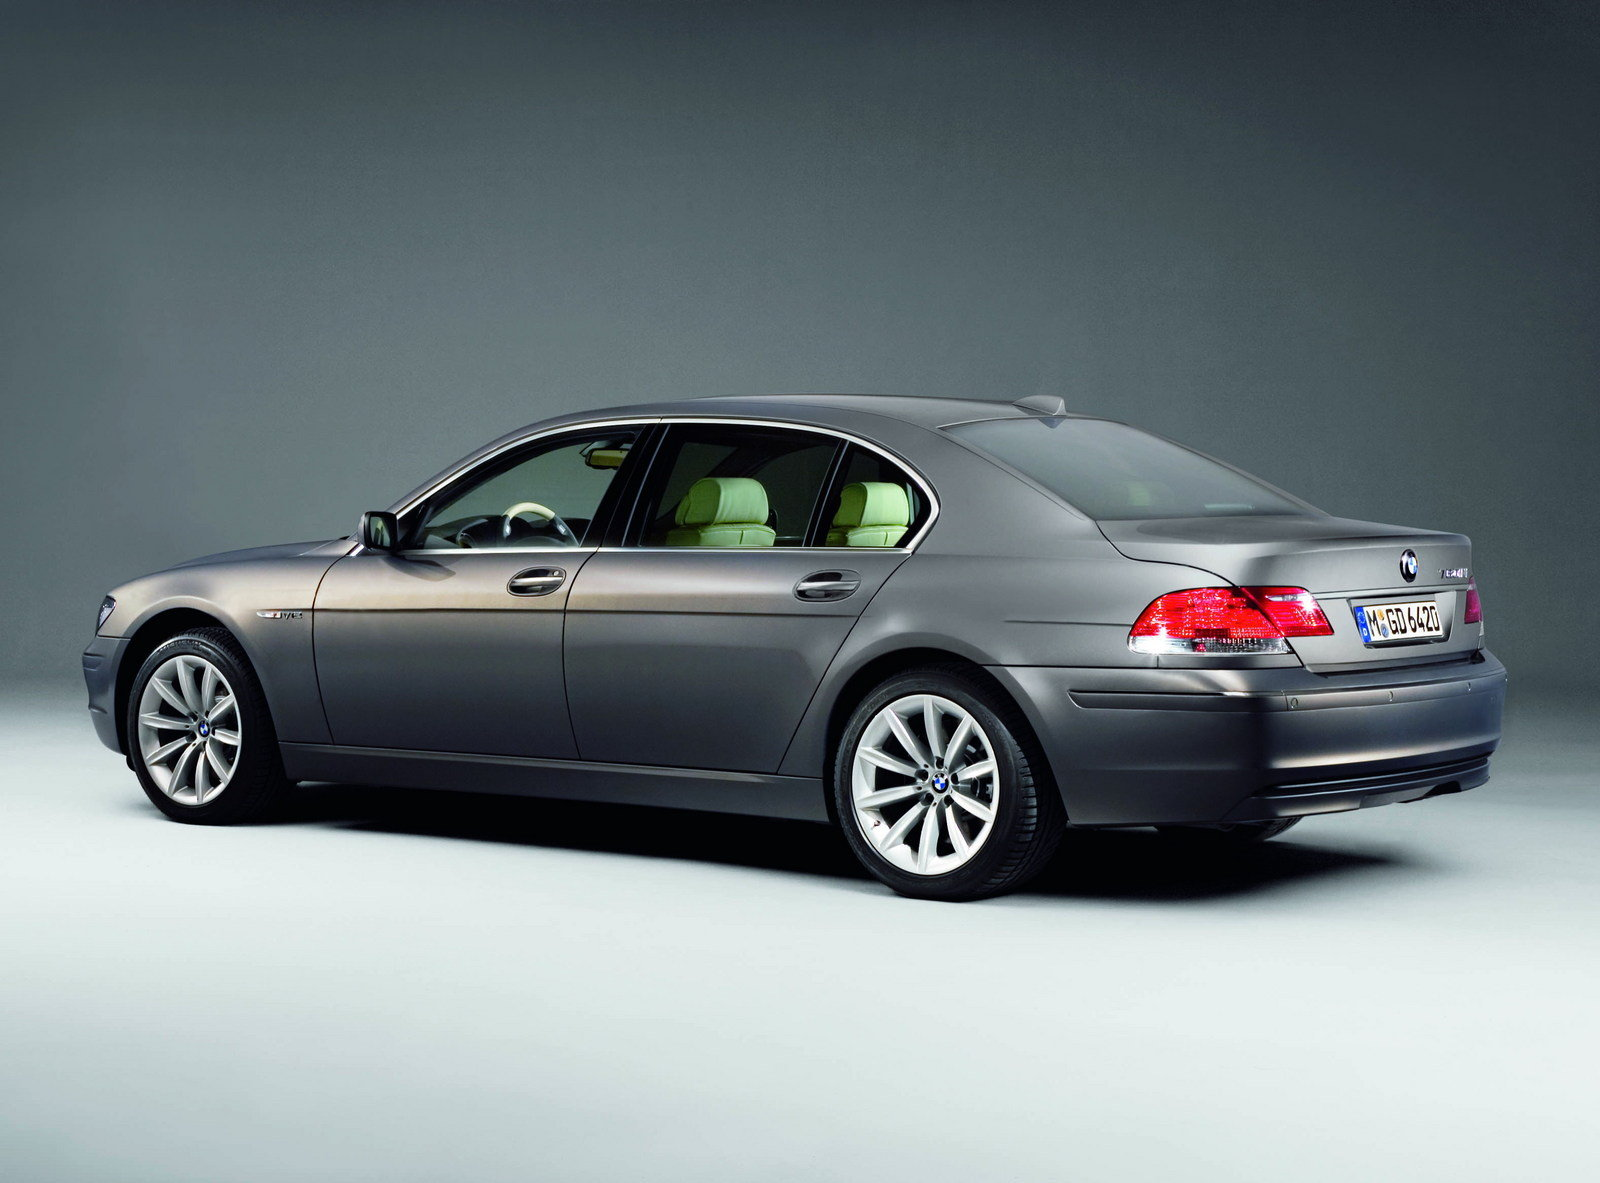 2007 bmw 7 series exclusive edition picture 86308 car review top speed. Black Bedroom Furniture Sets. Home Design Ideas